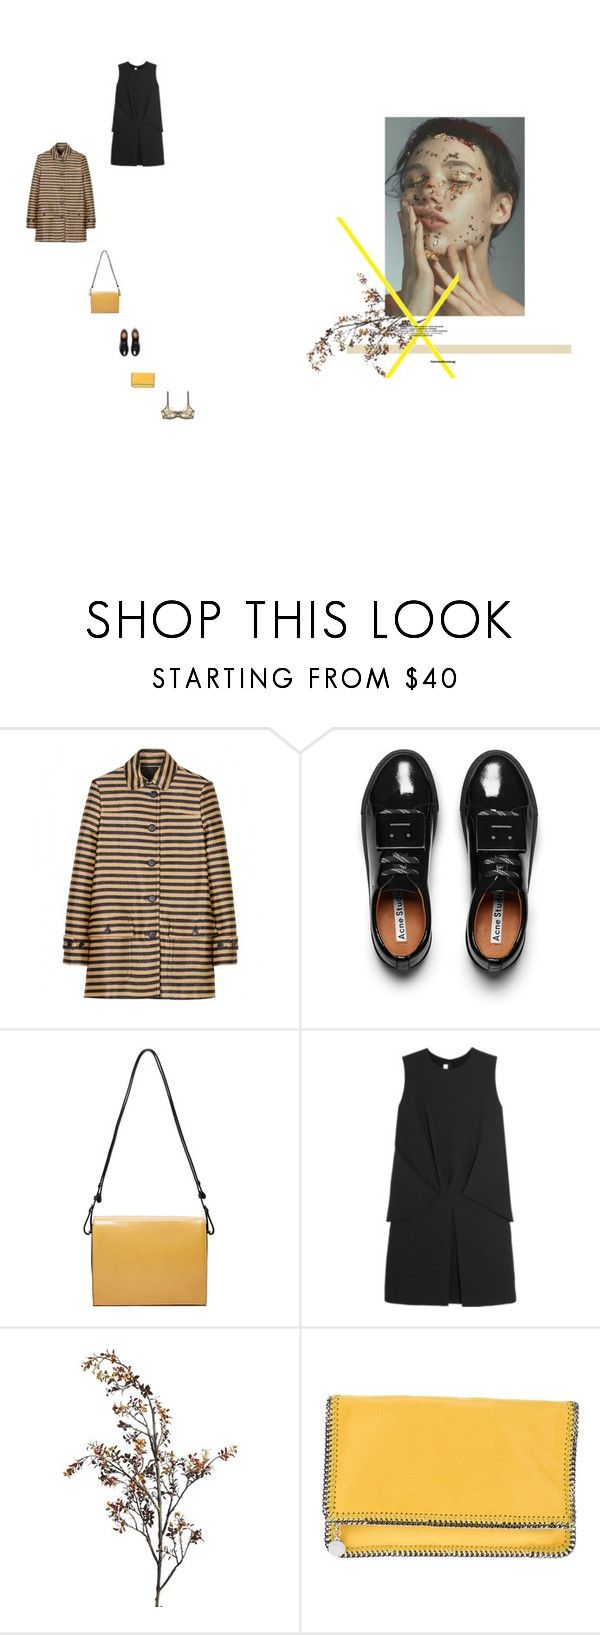 """everything is new - slow club"" by aimable ❤ liked on Polyvore featuring Burberry, Acne Studios, Marni, McQ by Alexander McQueen, Pier 1 Imports, STELLA McCARTNEY and Edge o' Beyond"